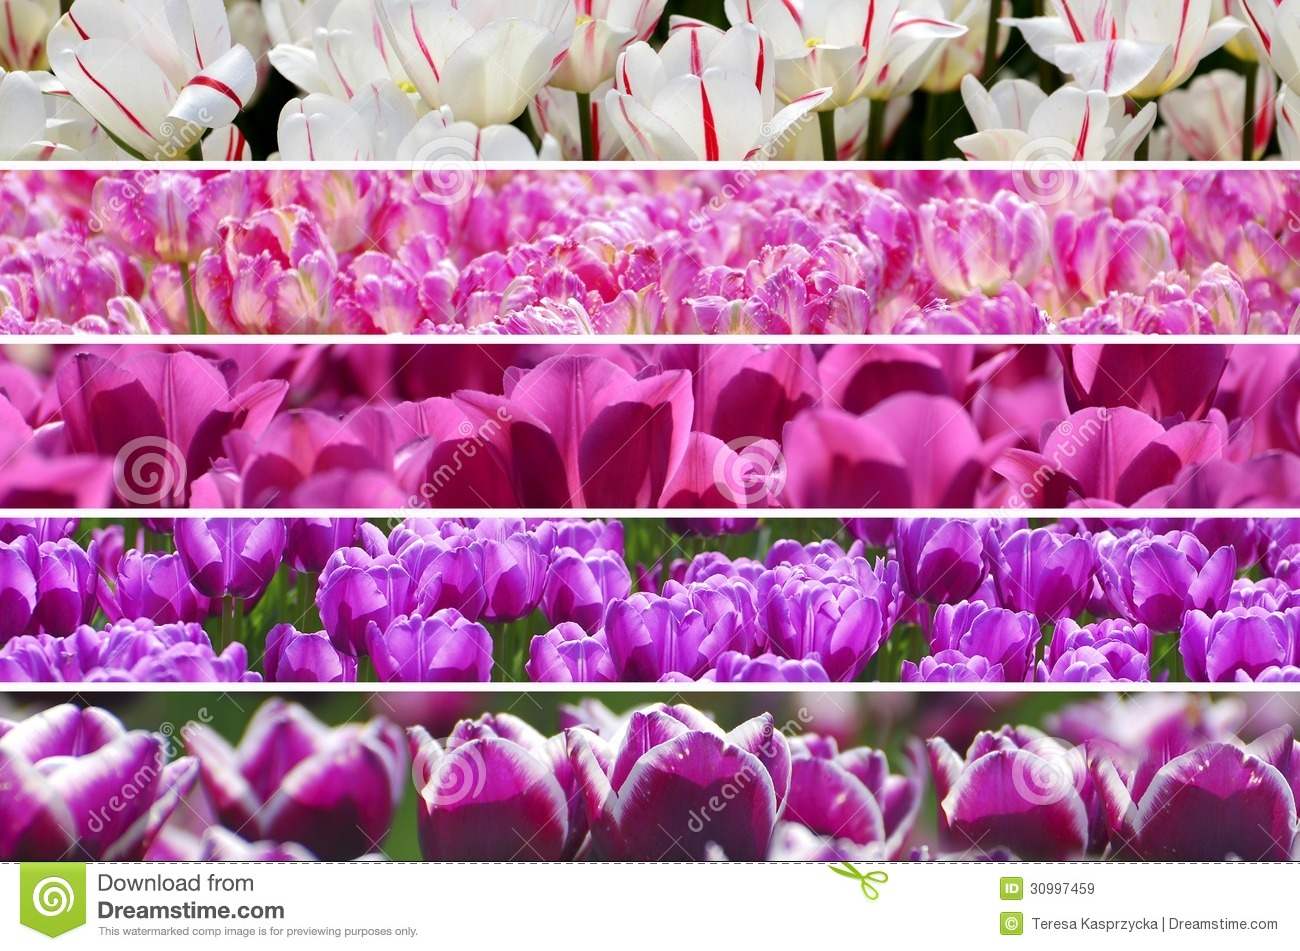 Rainbow colors tulips collage